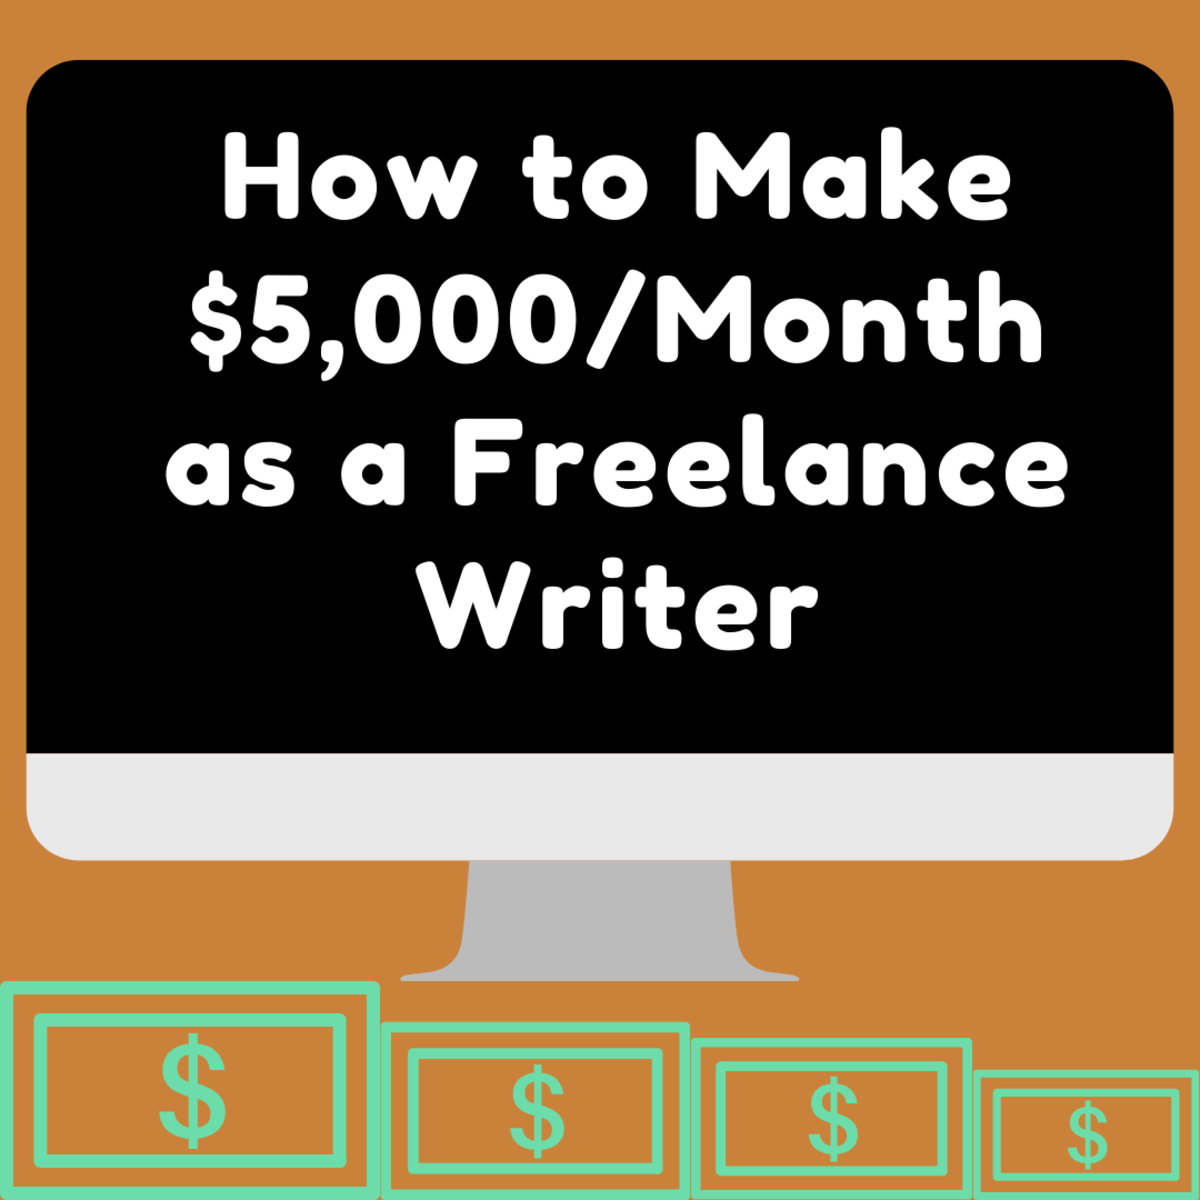 Earn $5,000 a month as a freelance writer and leave your boring old job behind!